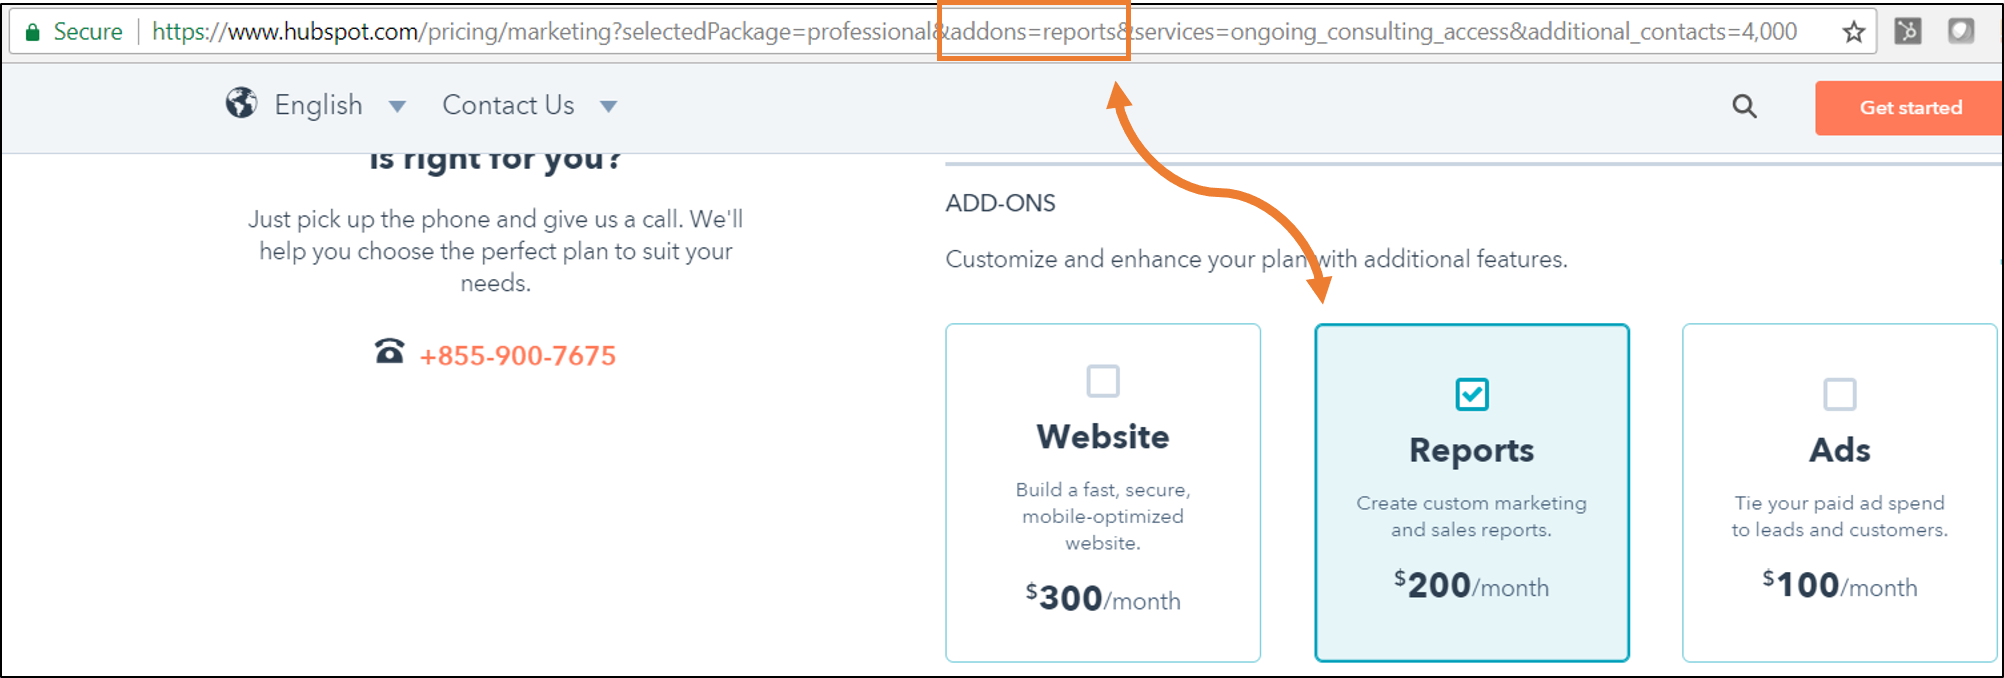 configuration-url.png  How HubSpot's Pricing Page Redesign Increased MQL Conversions by 165% & Free Sign-Ups by 89% configuration url